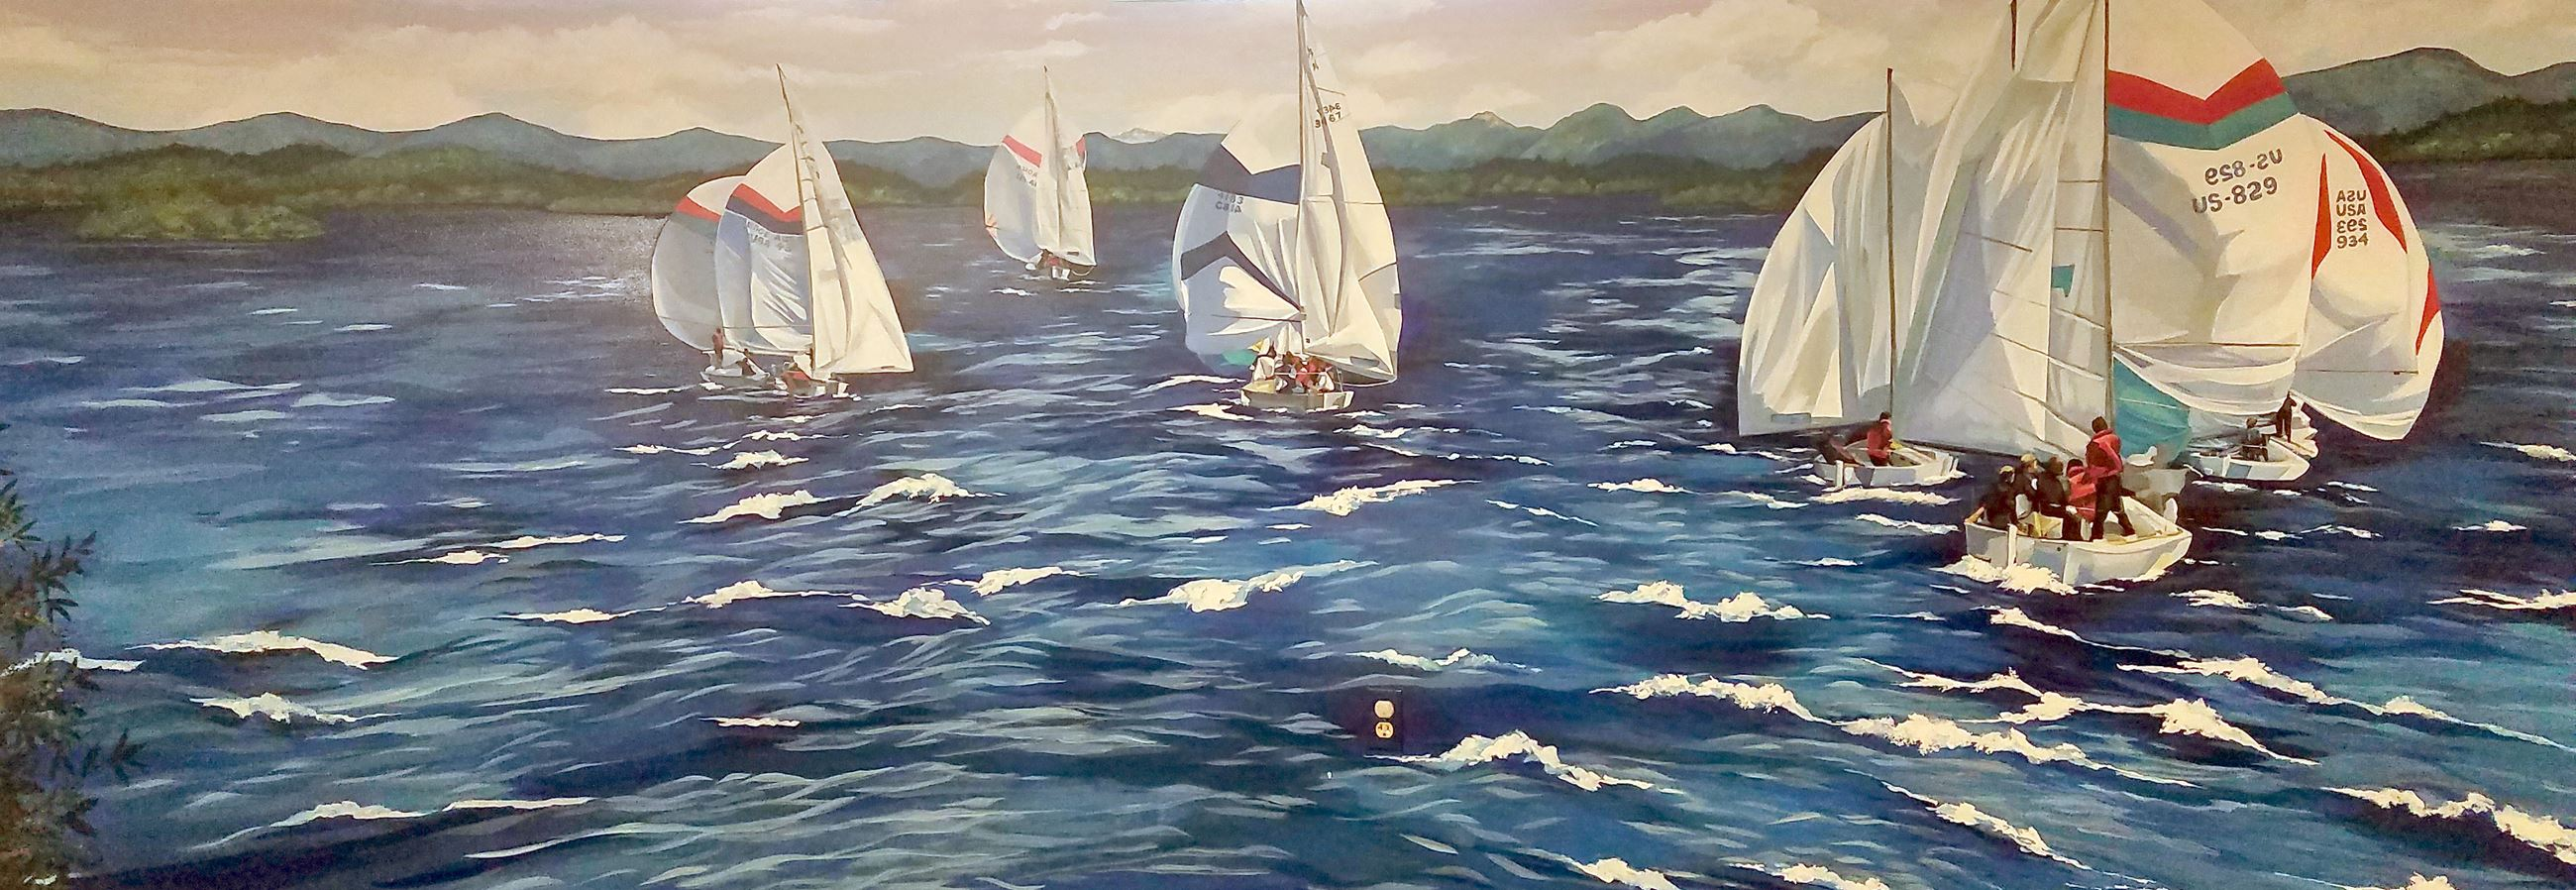 childrens room mural of sailboats